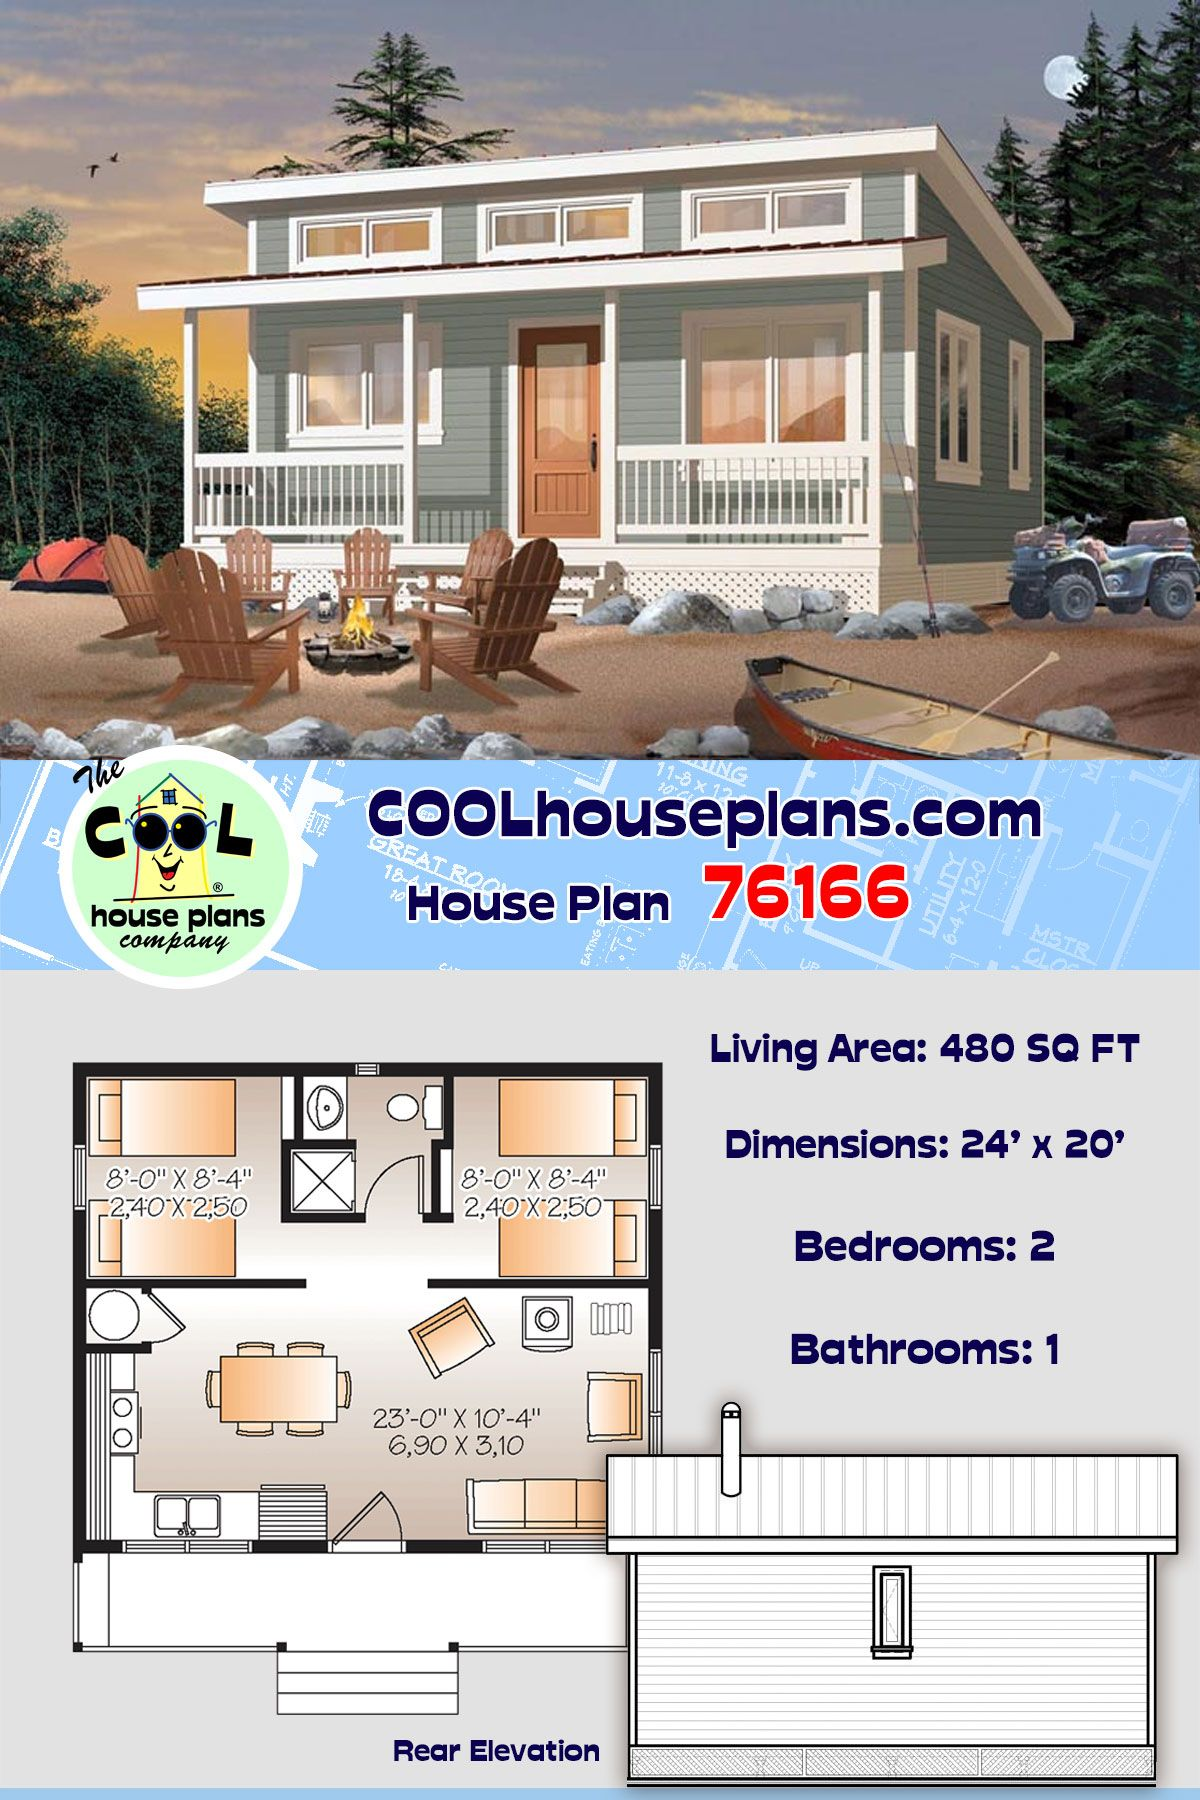 Cabin Style House Plan 76166 With 2 Bed 1 Bath Vacation House Plans House Plans Tiny House Plan